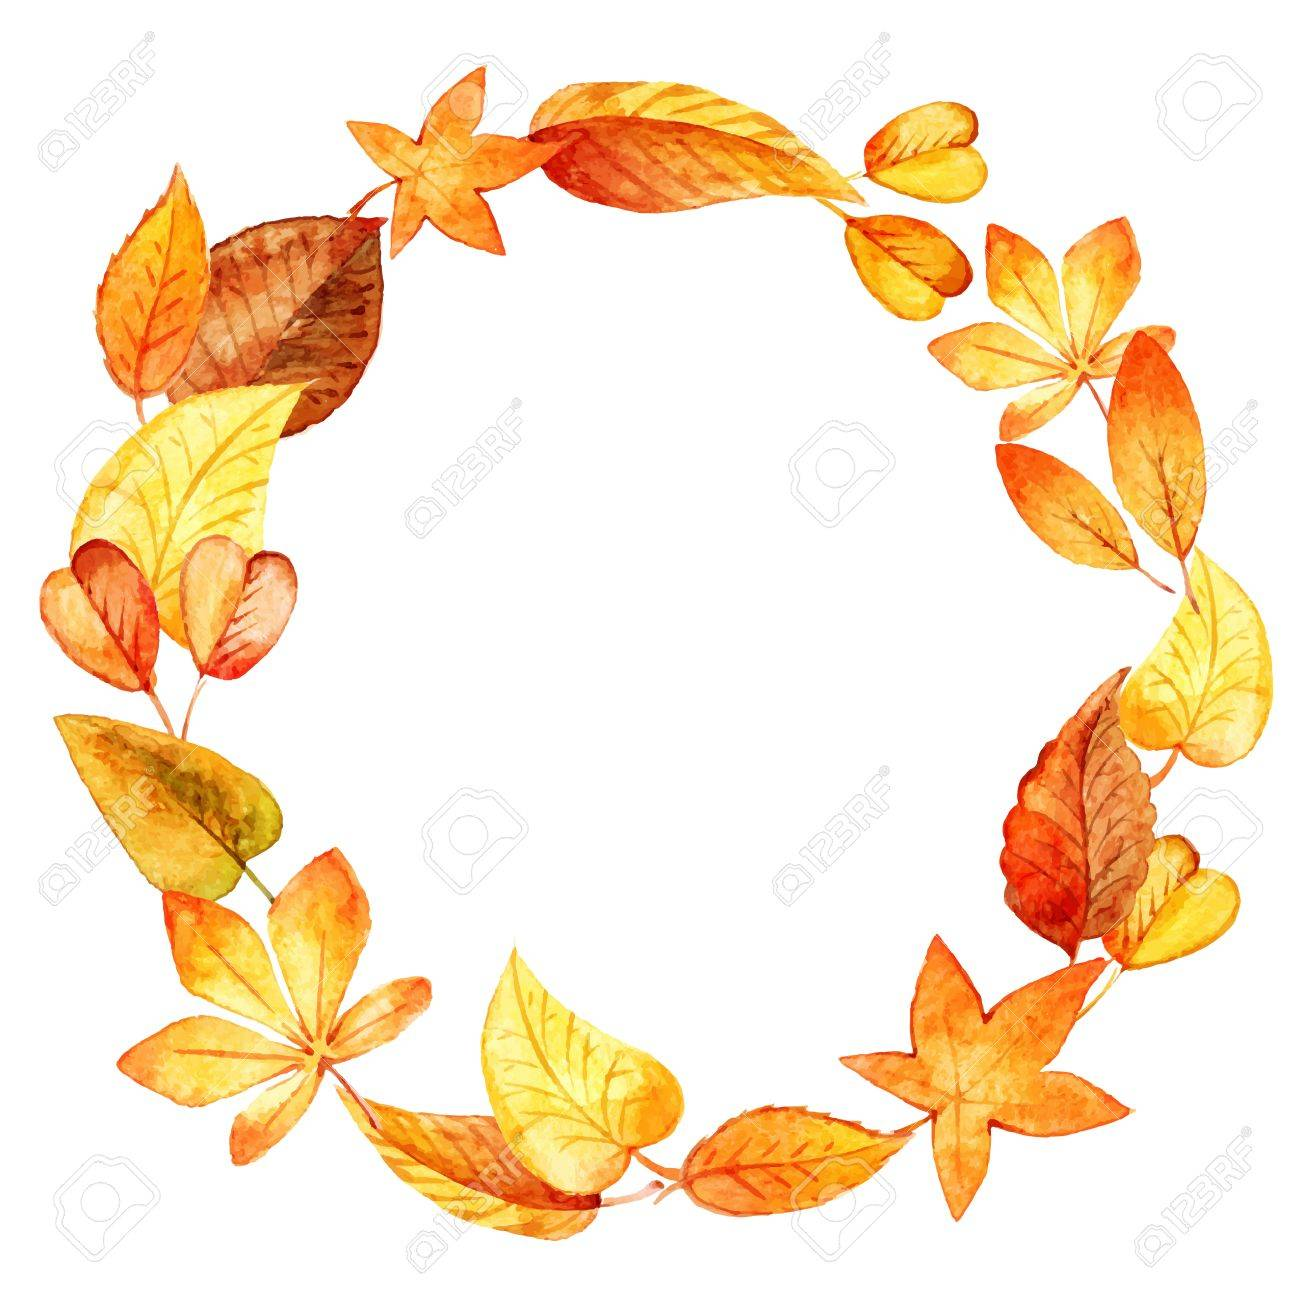 watercolor leaves round frame. Vector illustration - 31090937